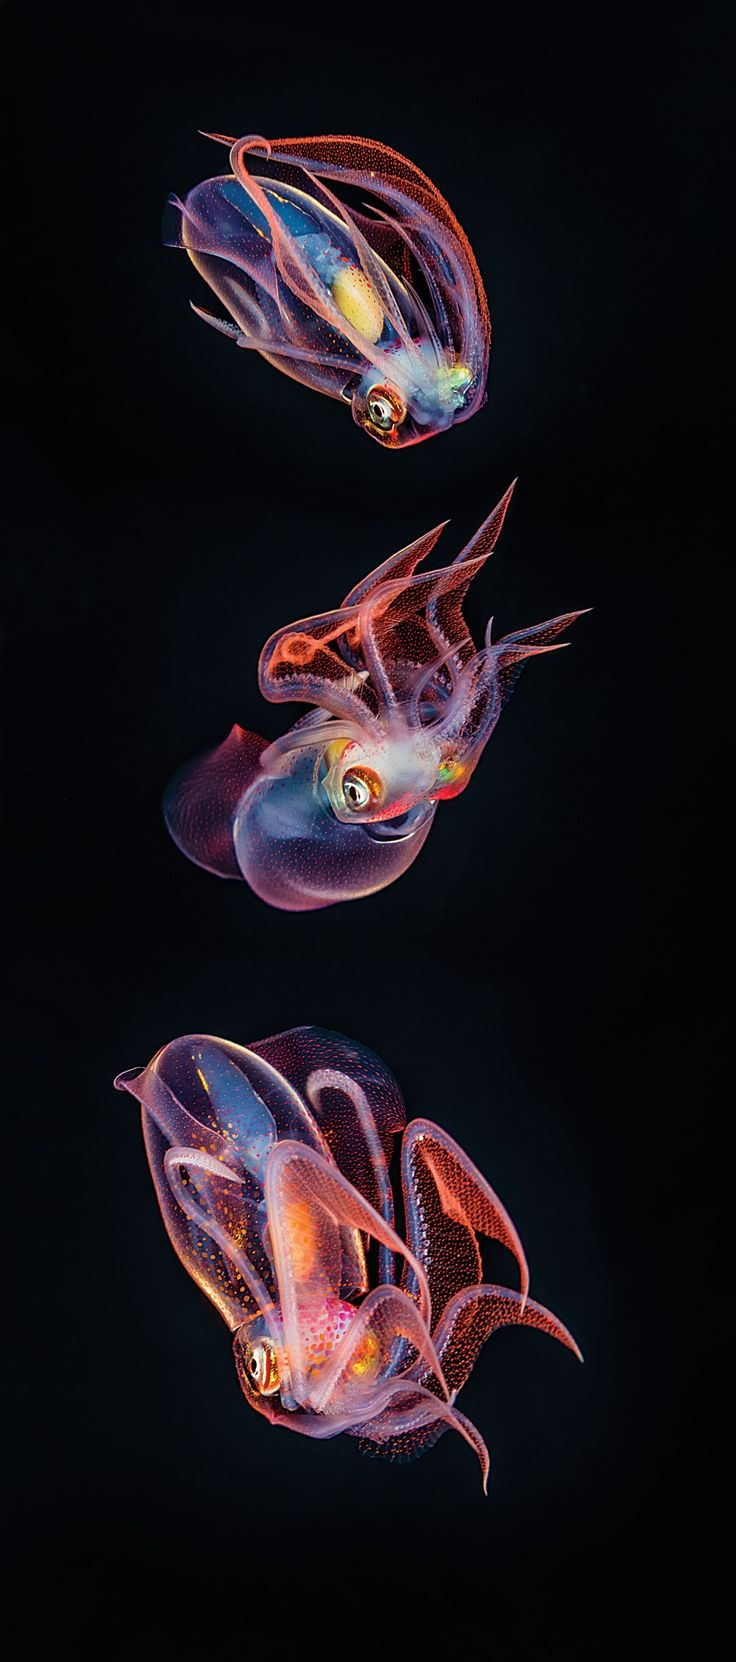 Night dive creatures off the big island of Hawaii - Sport Diver Magazine